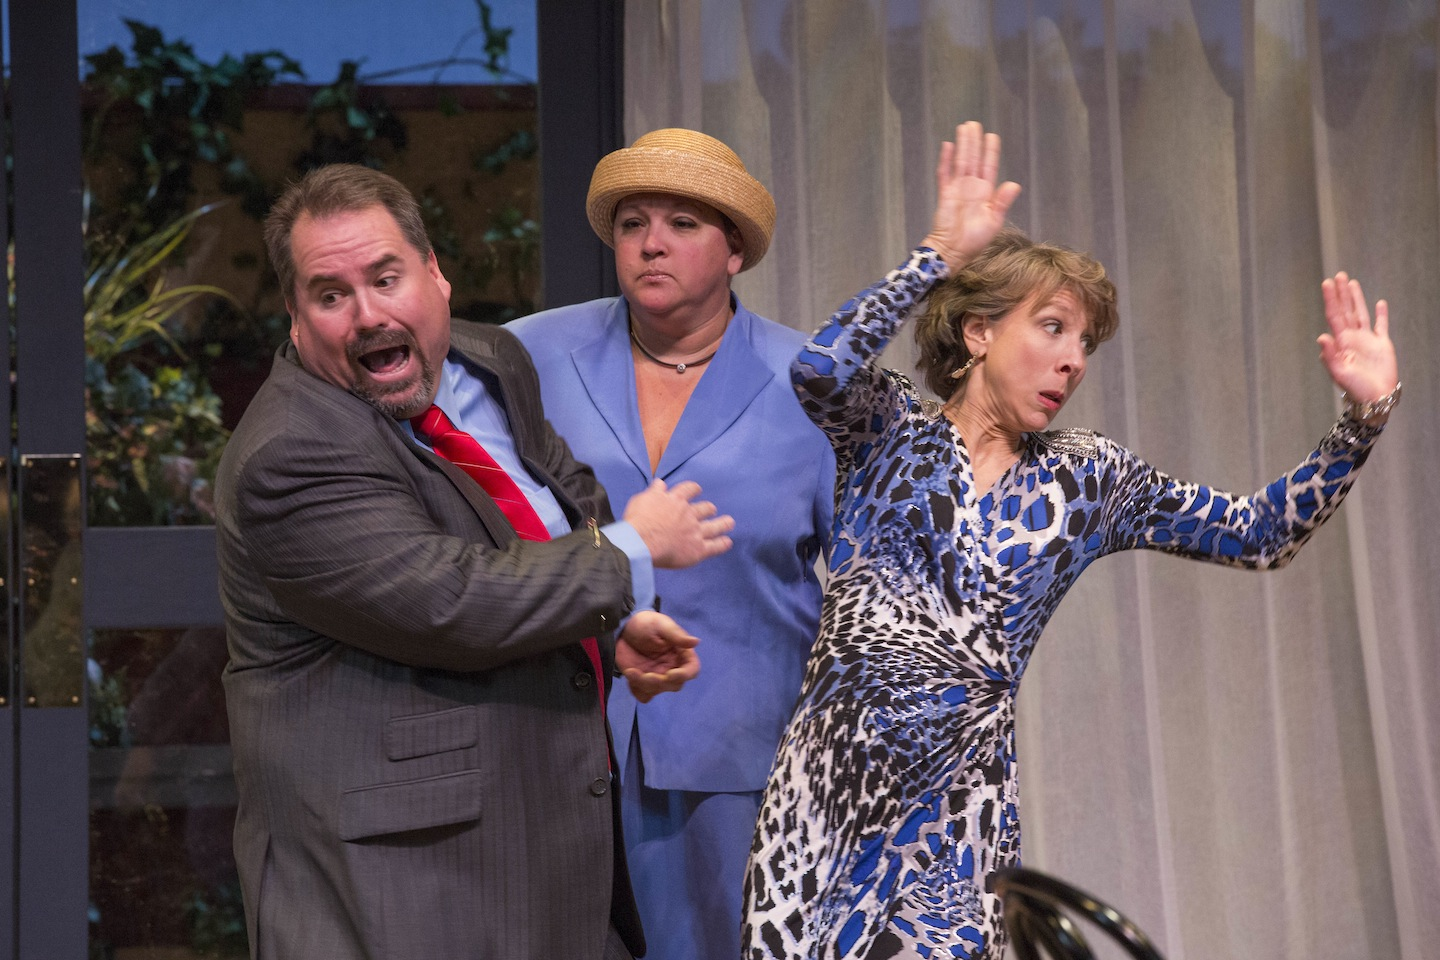 Muriel (Lynda Goeke) catches her husband Bingham (Parrish Williams) and Pamela (Jean Childers-Arnold) in an embarrassing moment.